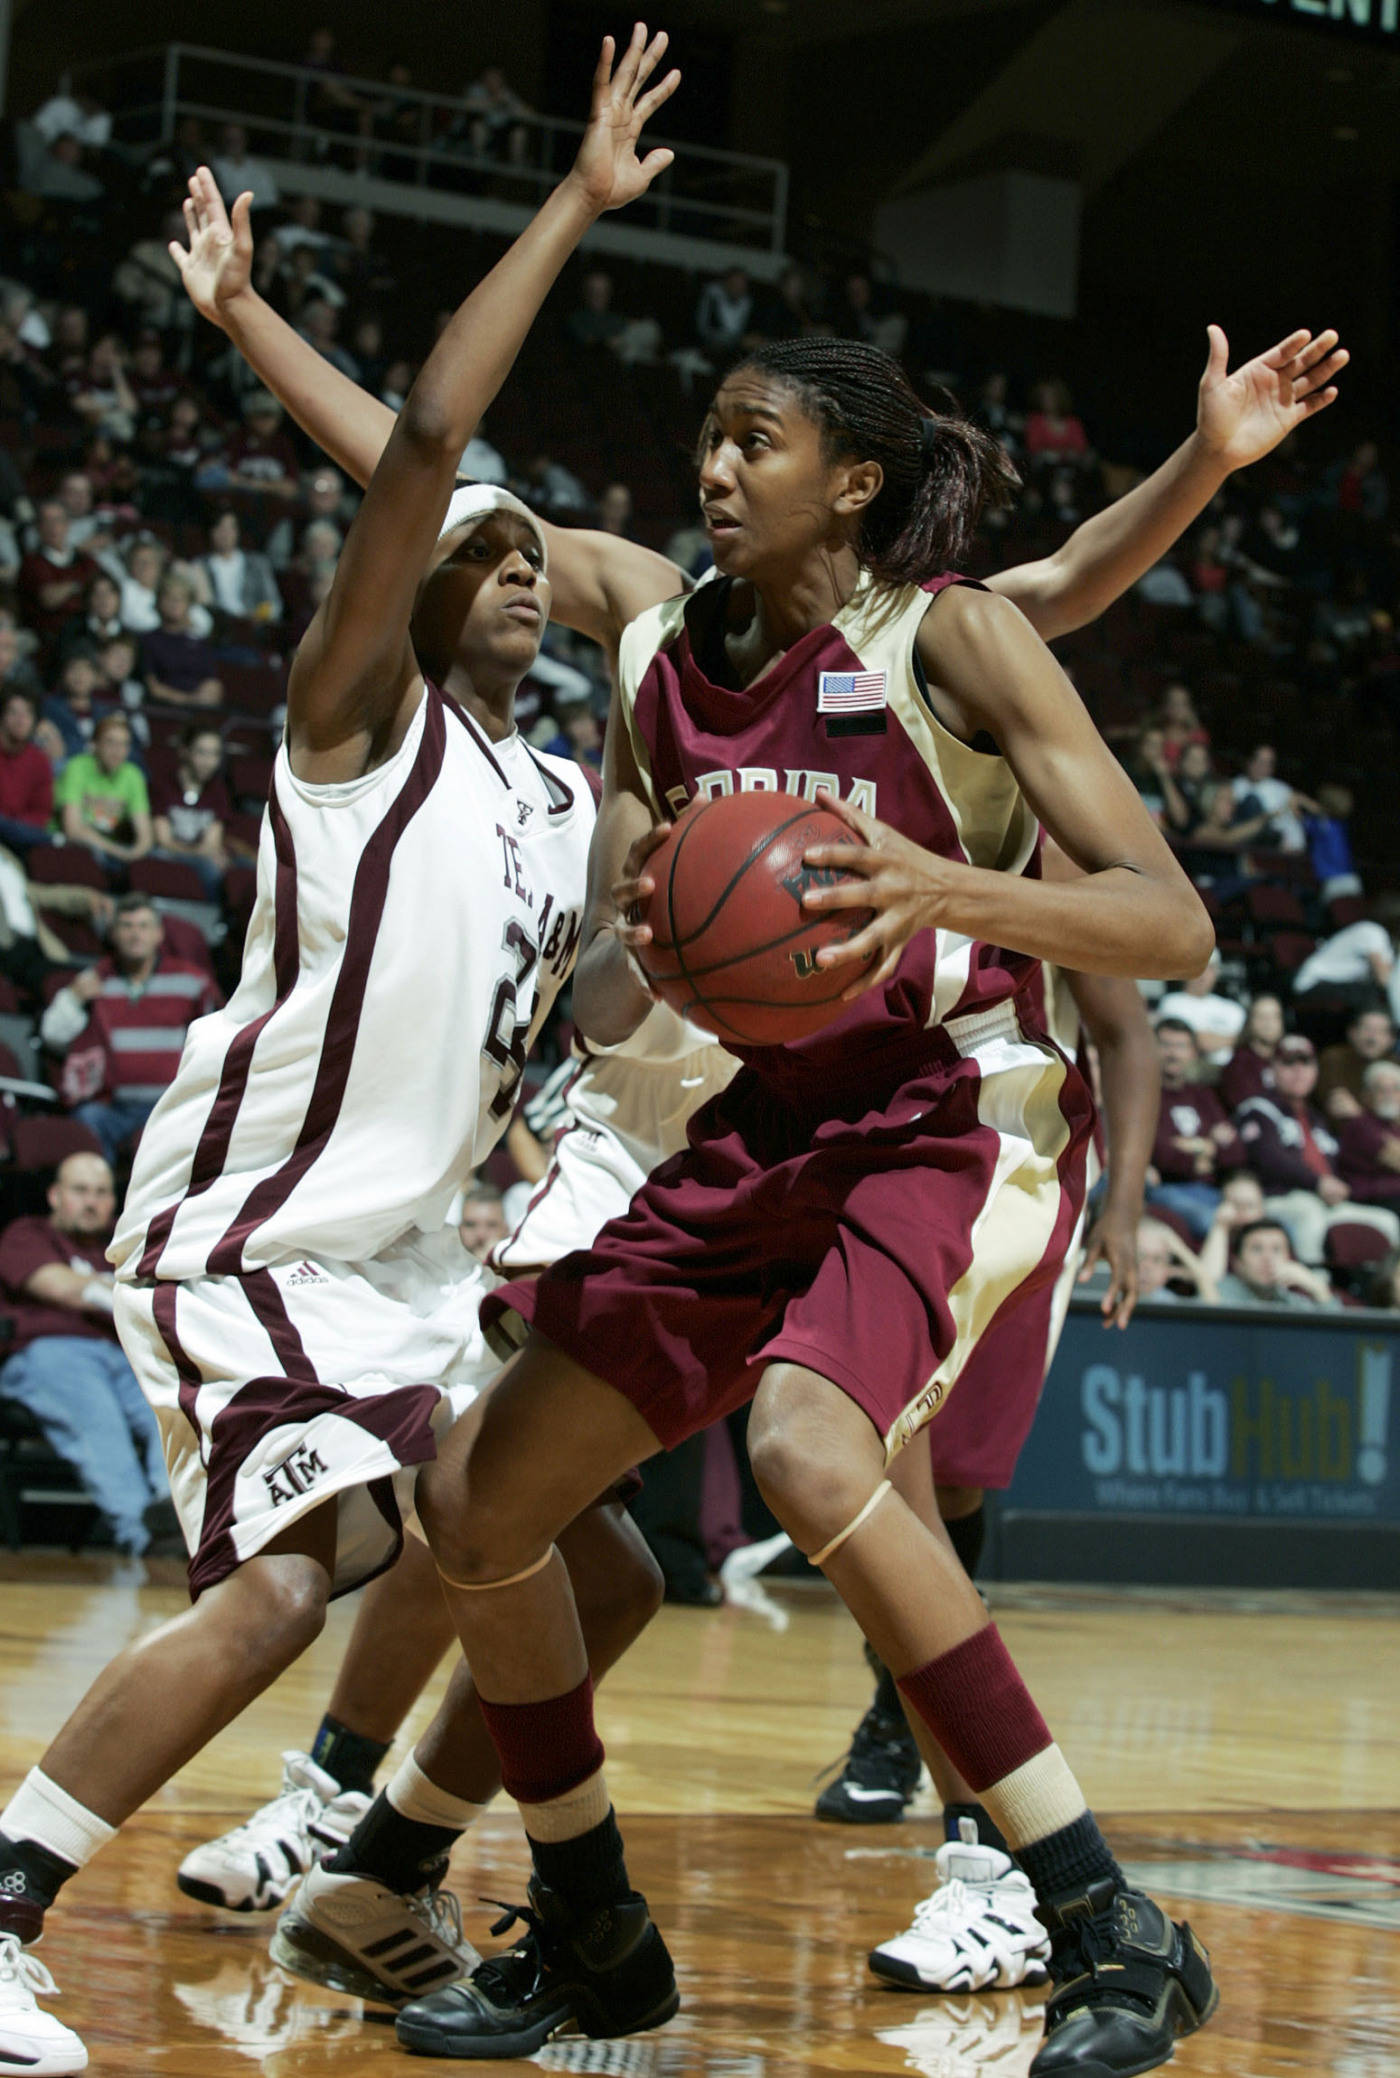 Florida State's Tanae Davis-Cain, right, is guarded by Texas A&M's Patrice Reado during the second half of a college basketball game, on Thursday, Dec. 6, 2007, in College Station, Texas. Texas A&M defeated Florida State 81-67. (AP Photo/Paul Zoeller)